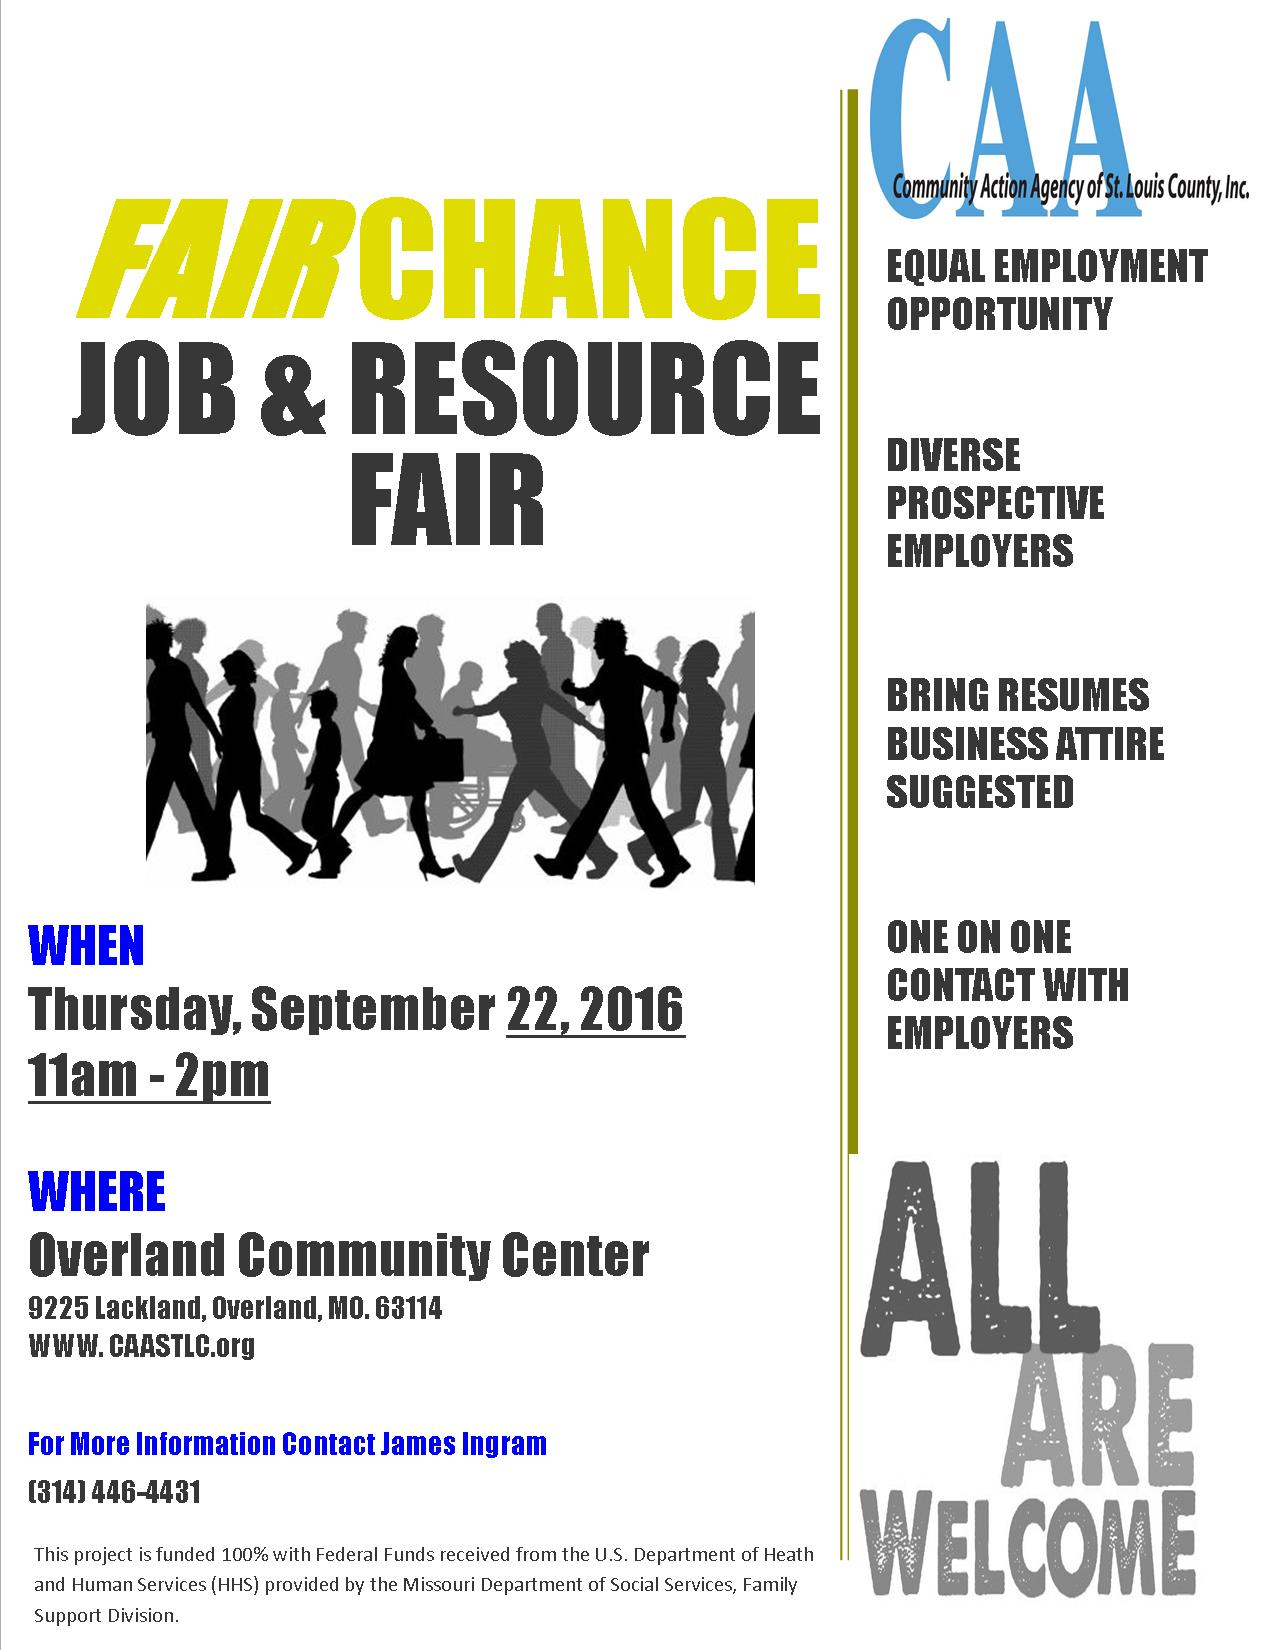 Fair Chance Job Fair Flyer 2016